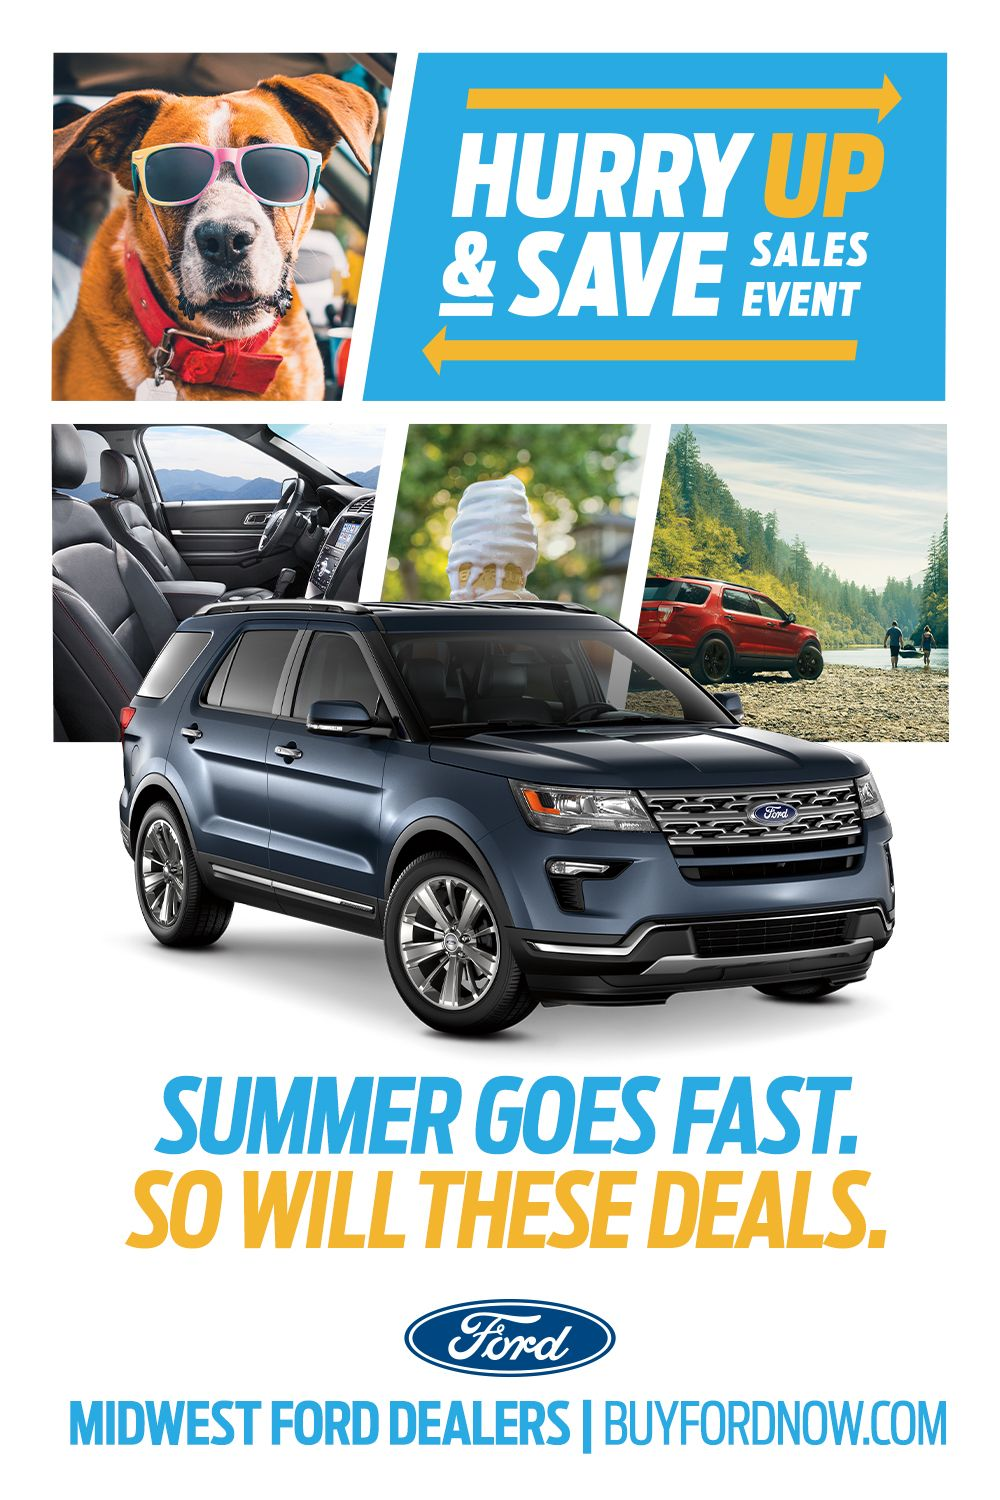 Come In Now To The Hurry Up And Save Sales Event For Huge Limited